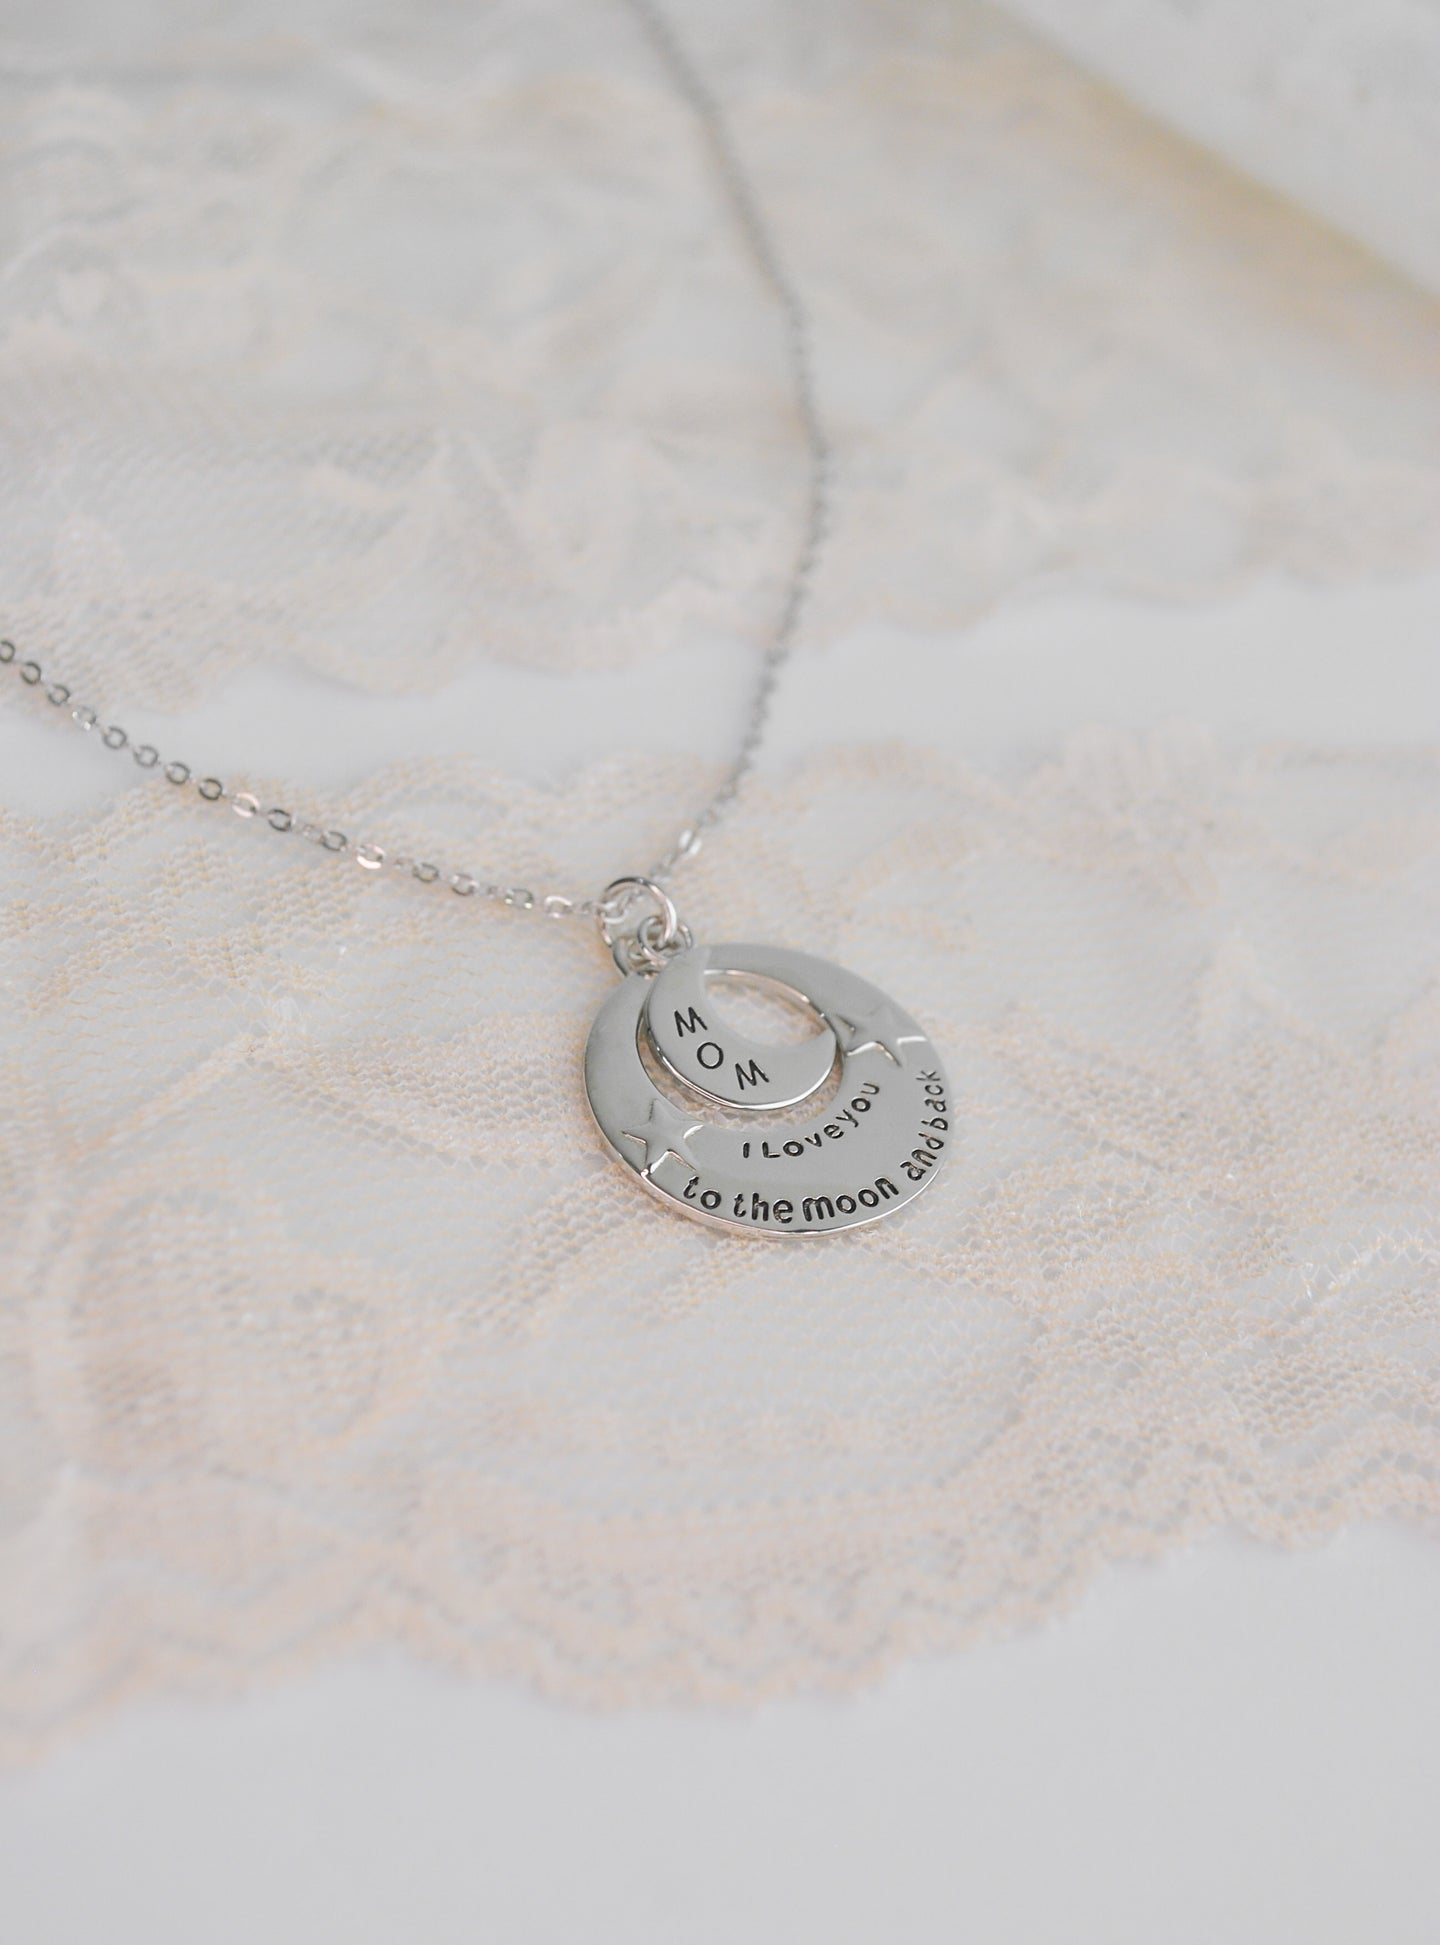 NEW. Collar Mom to the Moon de Plata